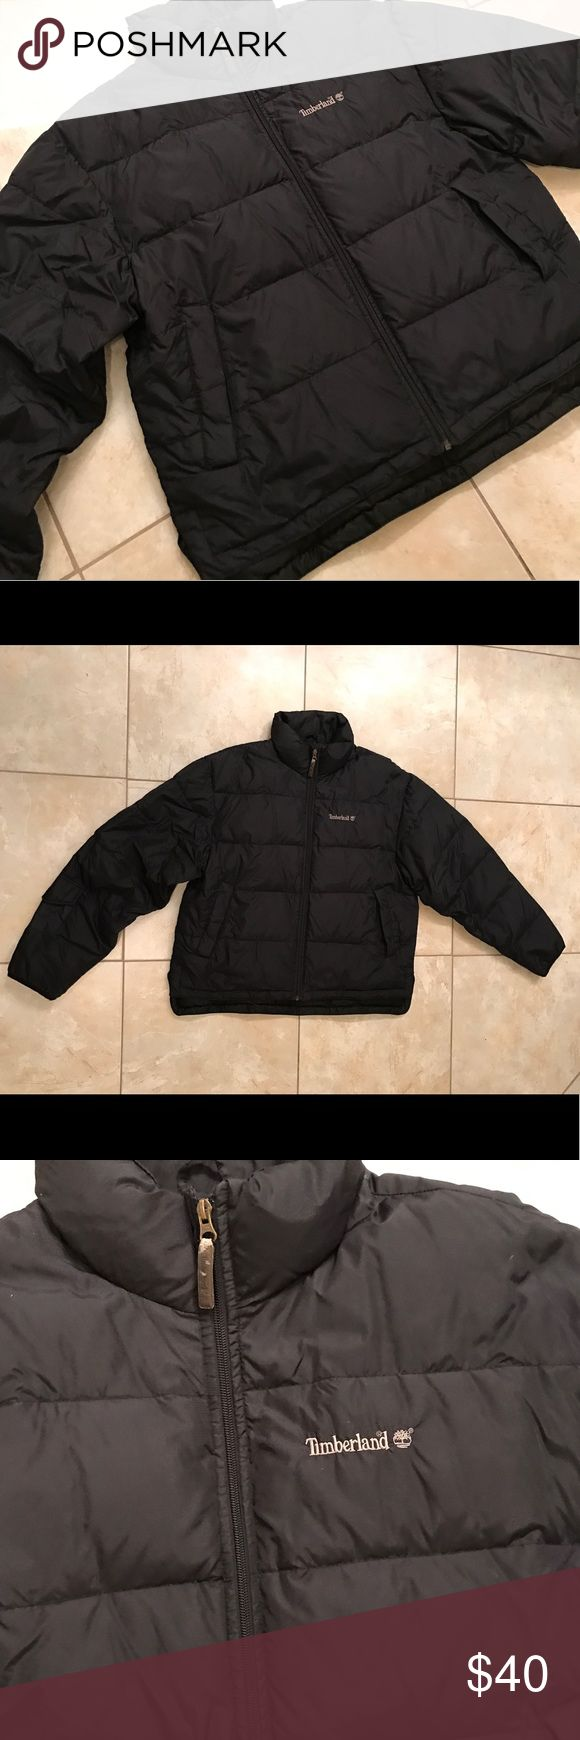 Men's Timberland Coat Good used condition. Size XL. Men's Timberland jacket. Timberland Jackets & Coats Puffers